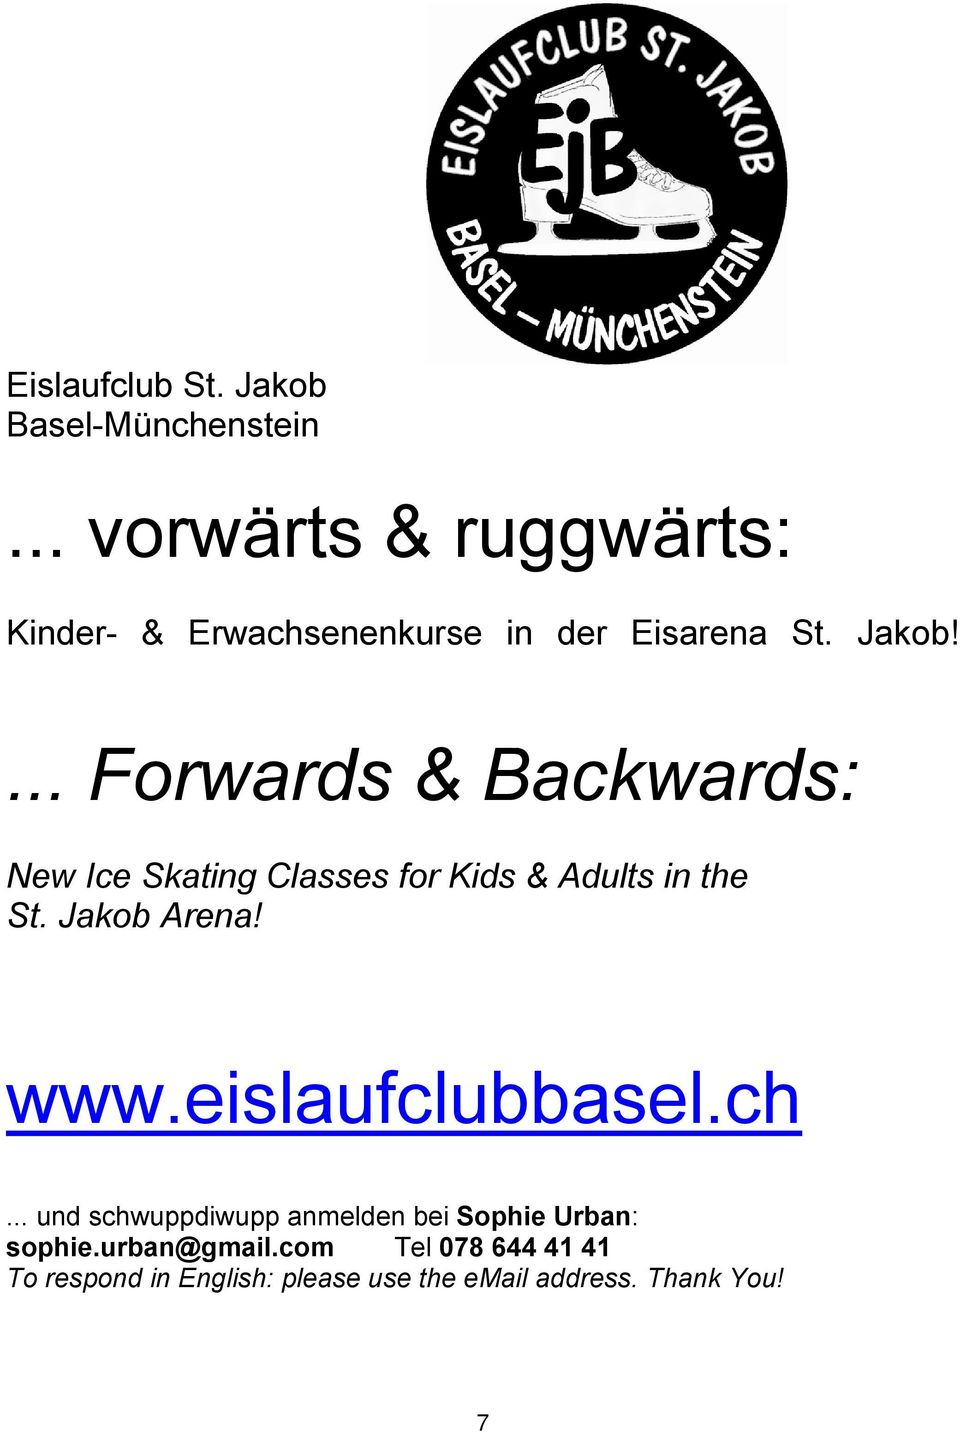 ... Forwards & Backwards: New Ice Skating Classes for Kids & Adults in the St. Jakob Arena! www.